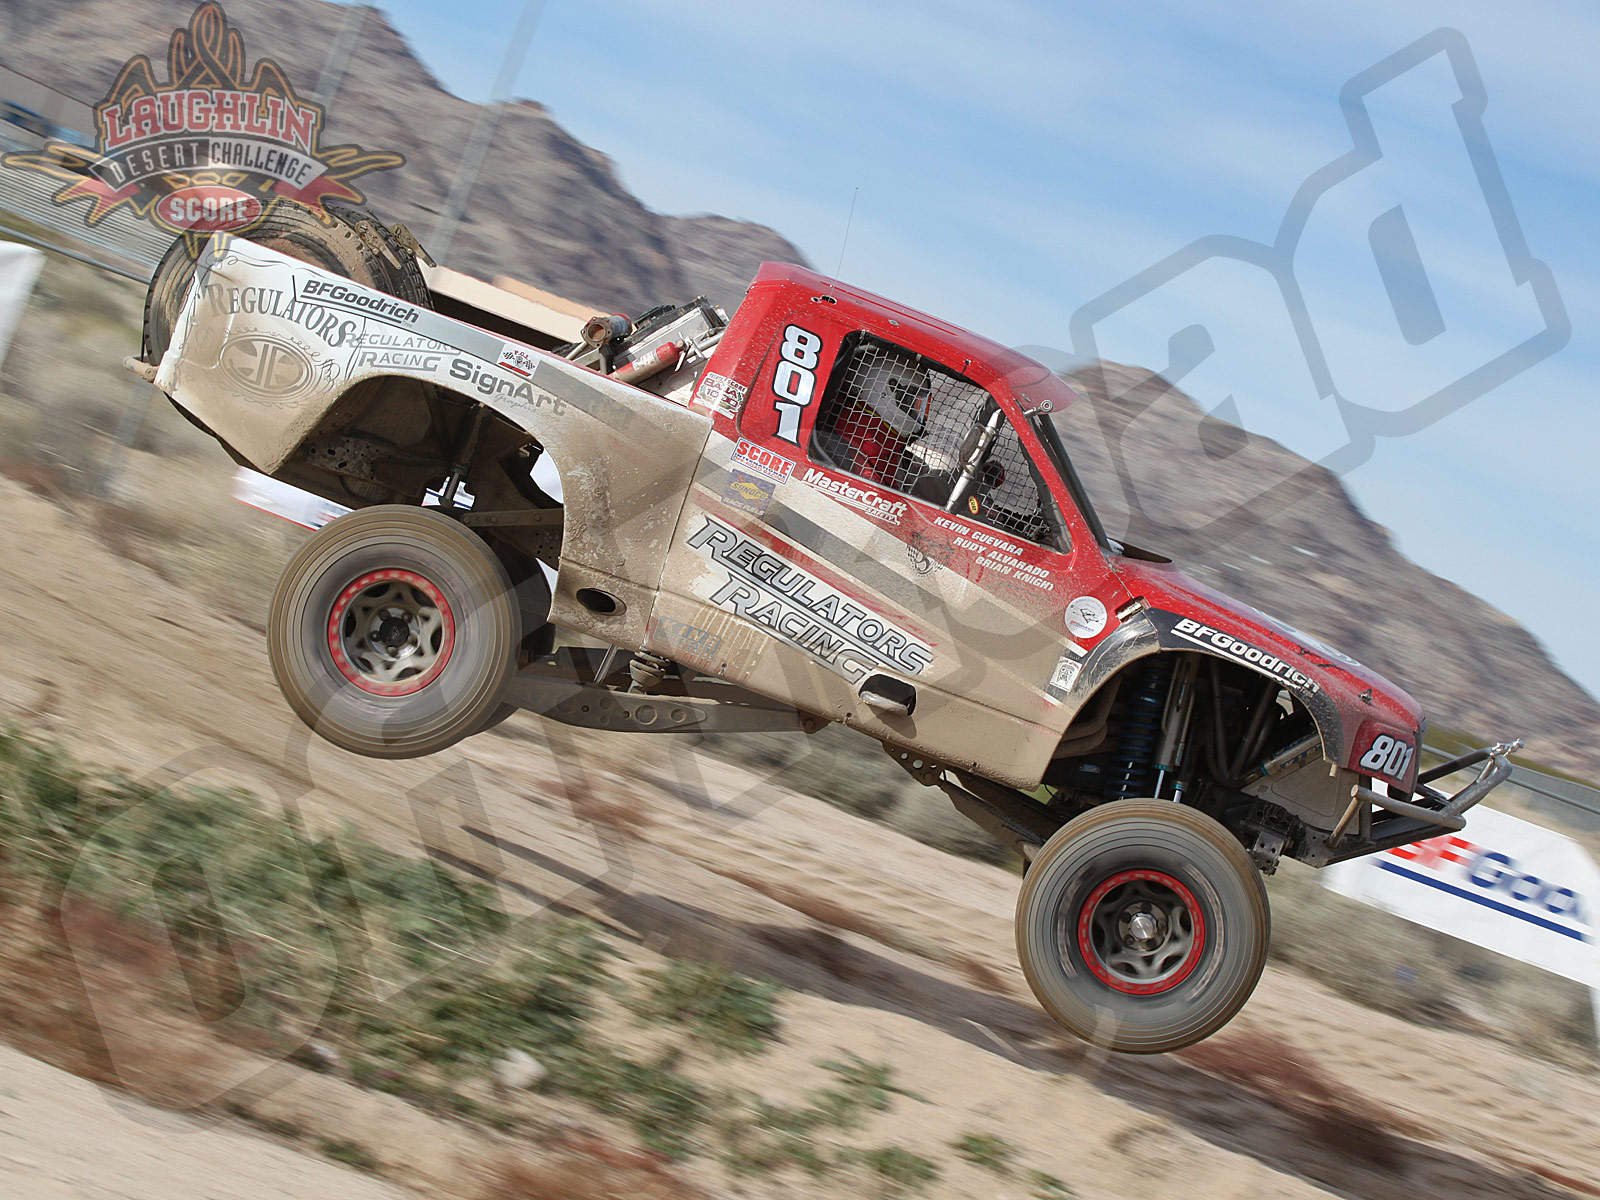 012011or 6634+2011 score laughlin desert challenge+truck classes